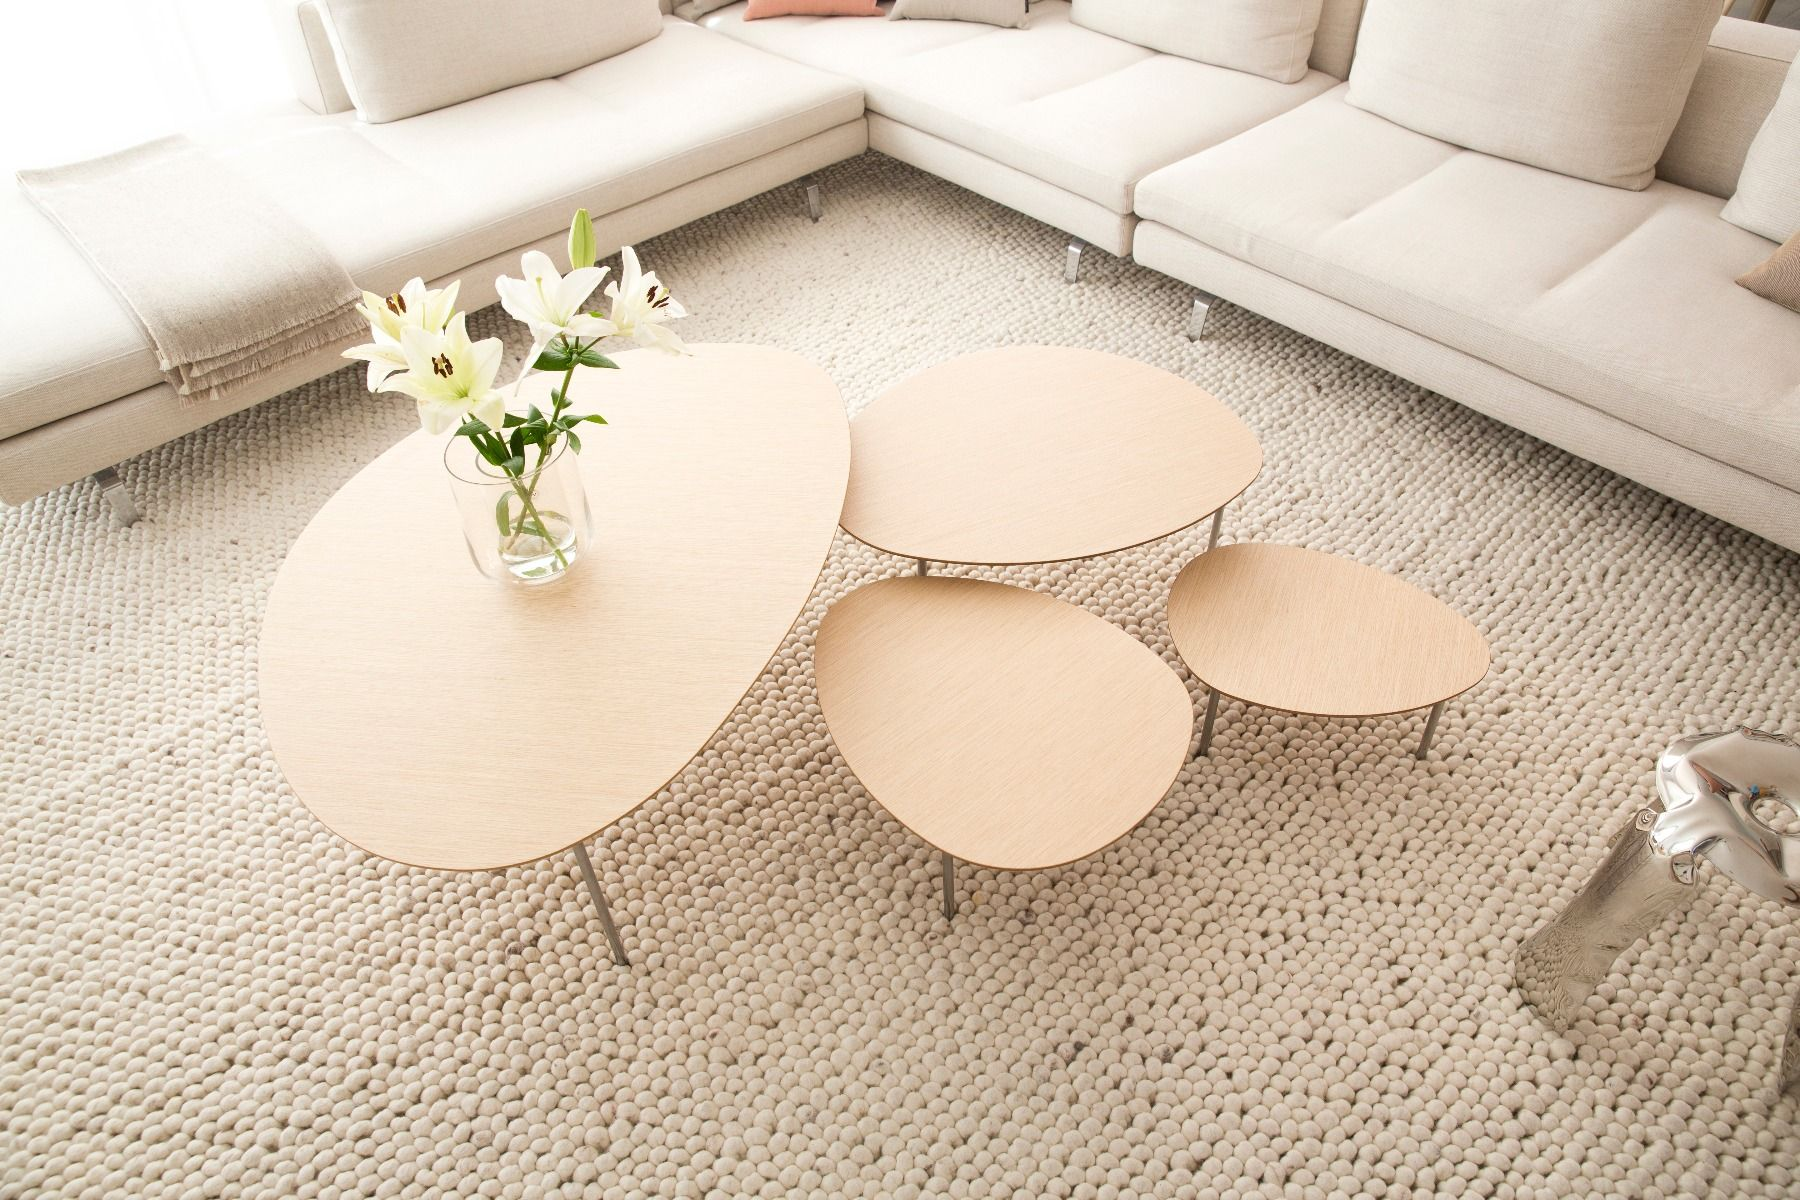 STUA Eclipse Coffee tables in living room